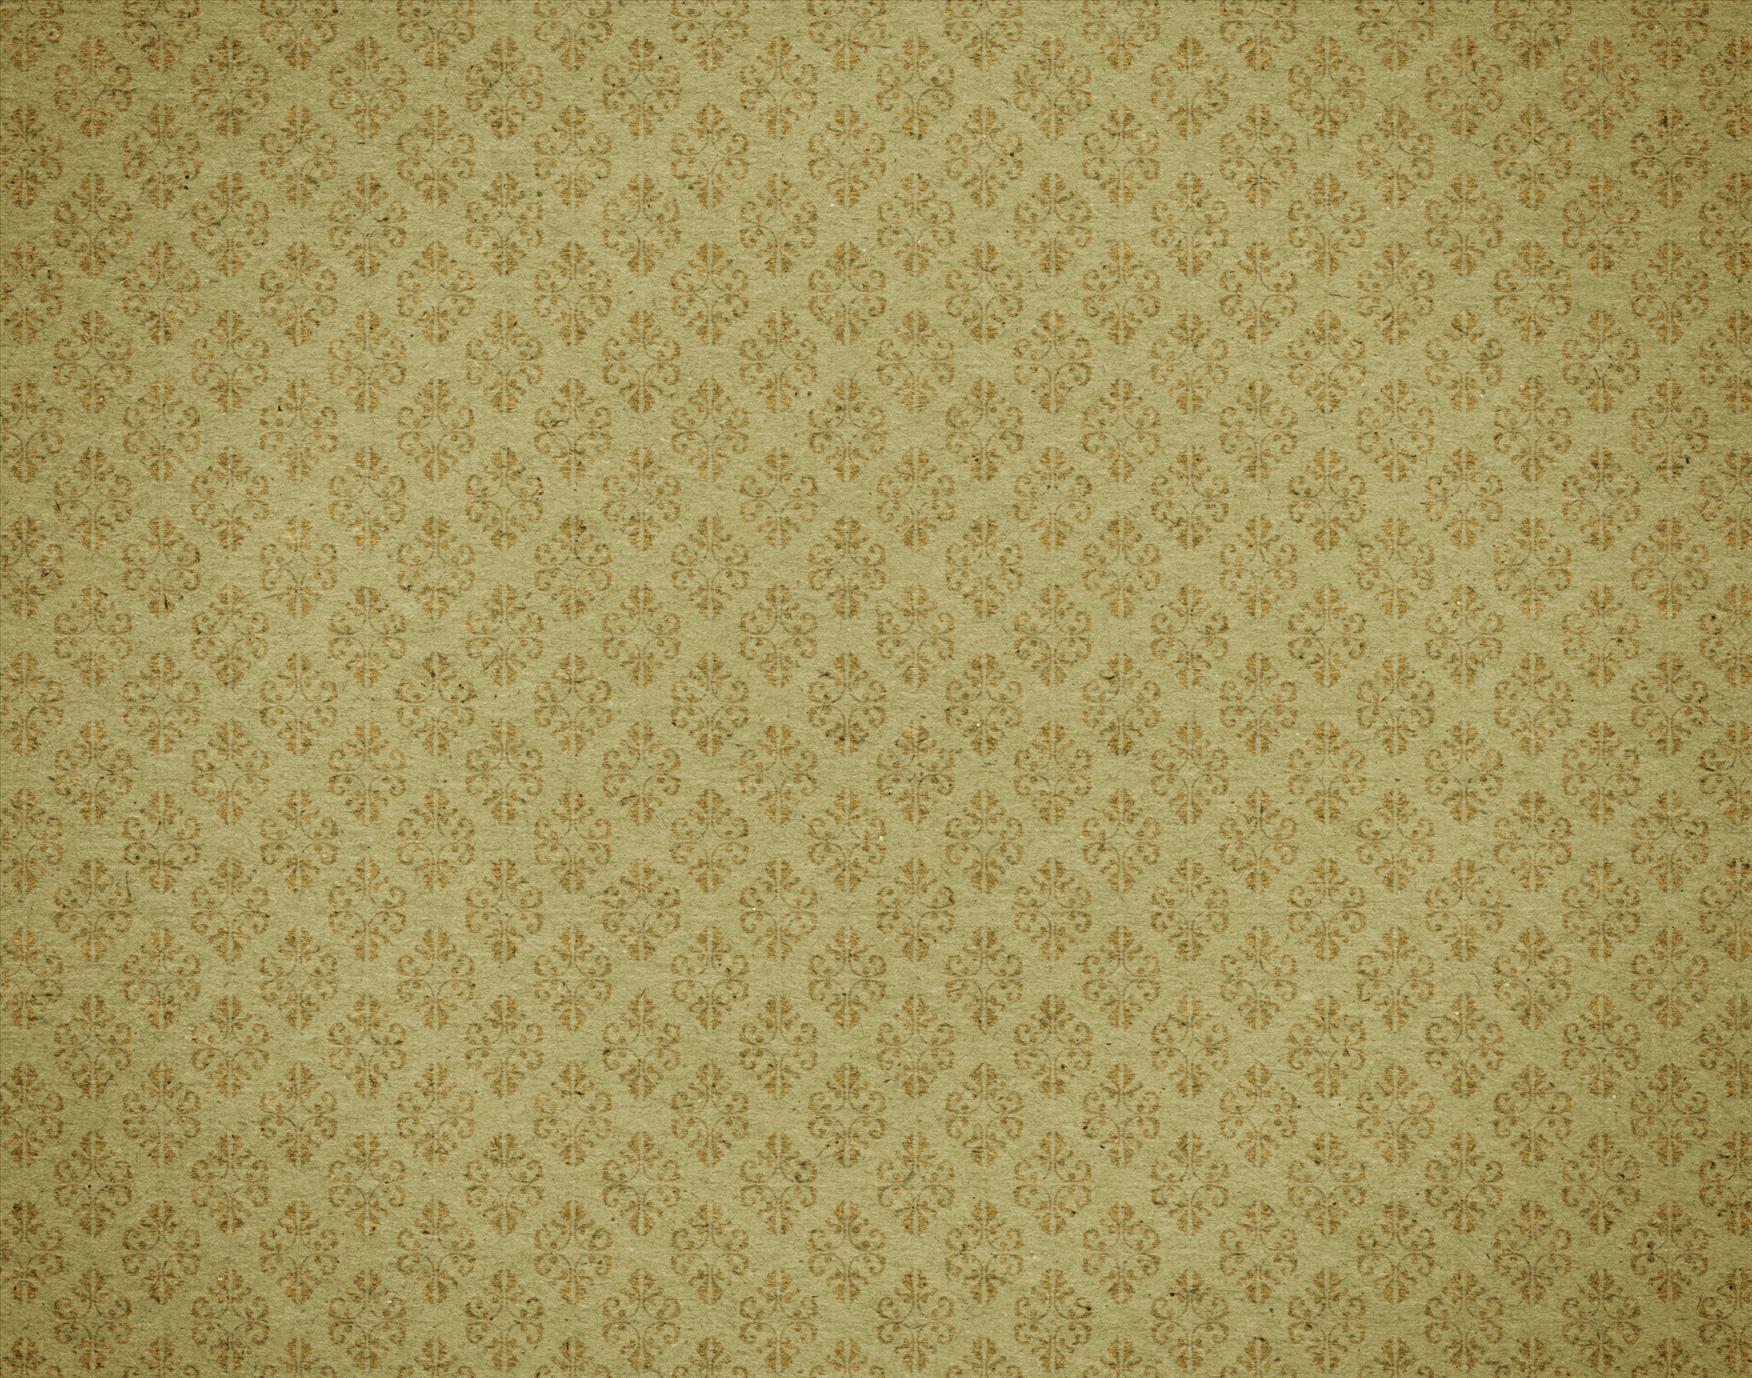 Vintage Wallpaper Backgrounds 1752x1378